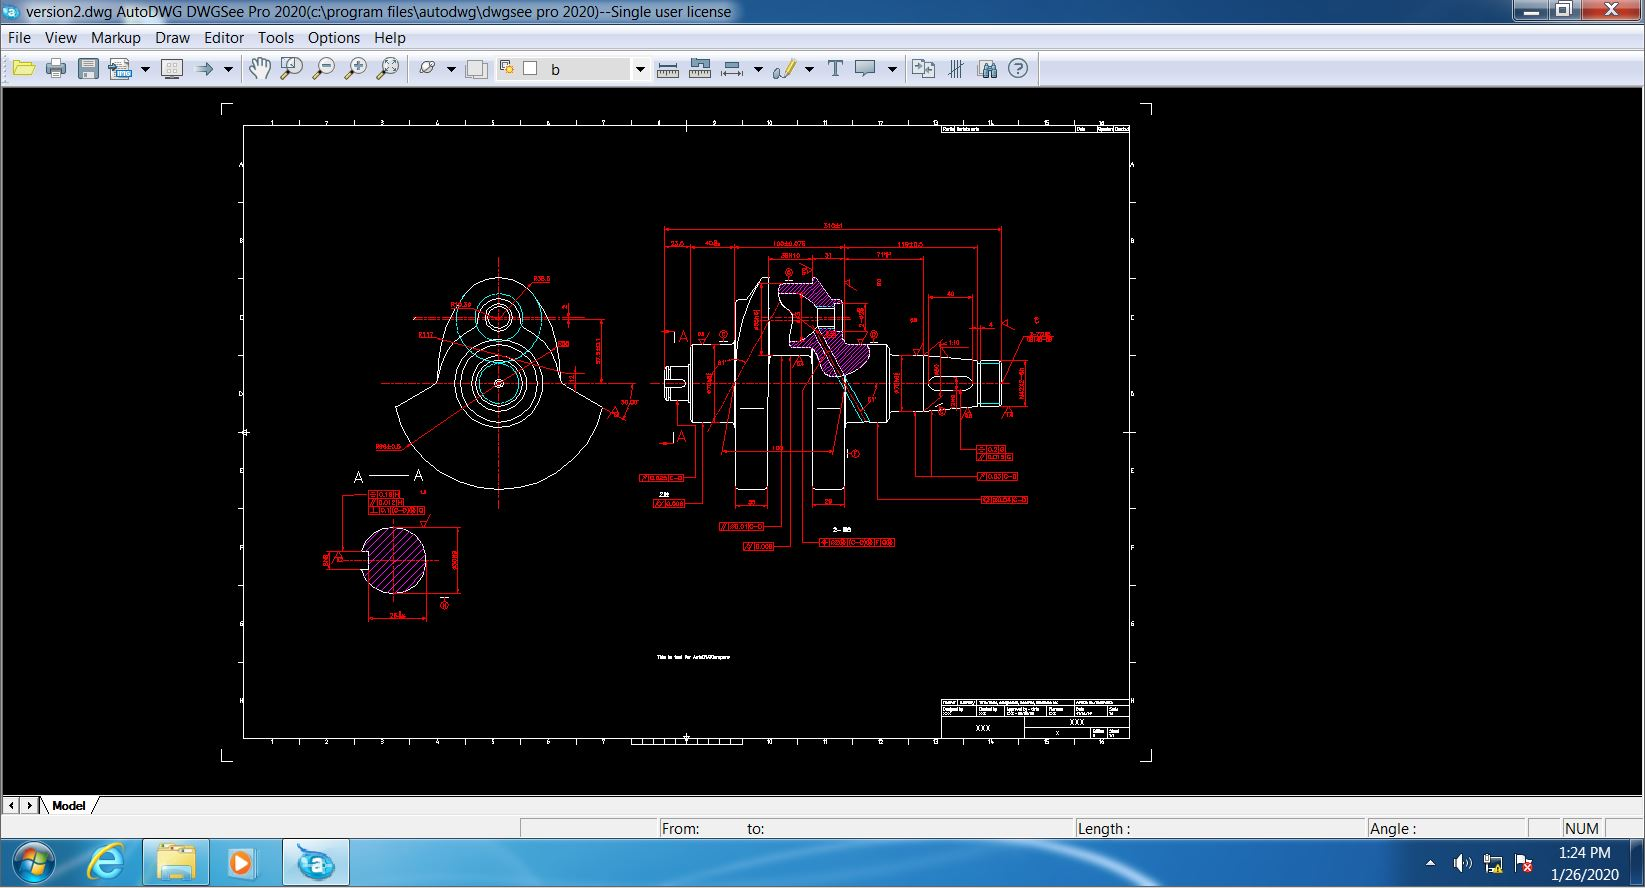 Working with AutoDWG DWGSee Pro 2020 5.2.2.2 full license